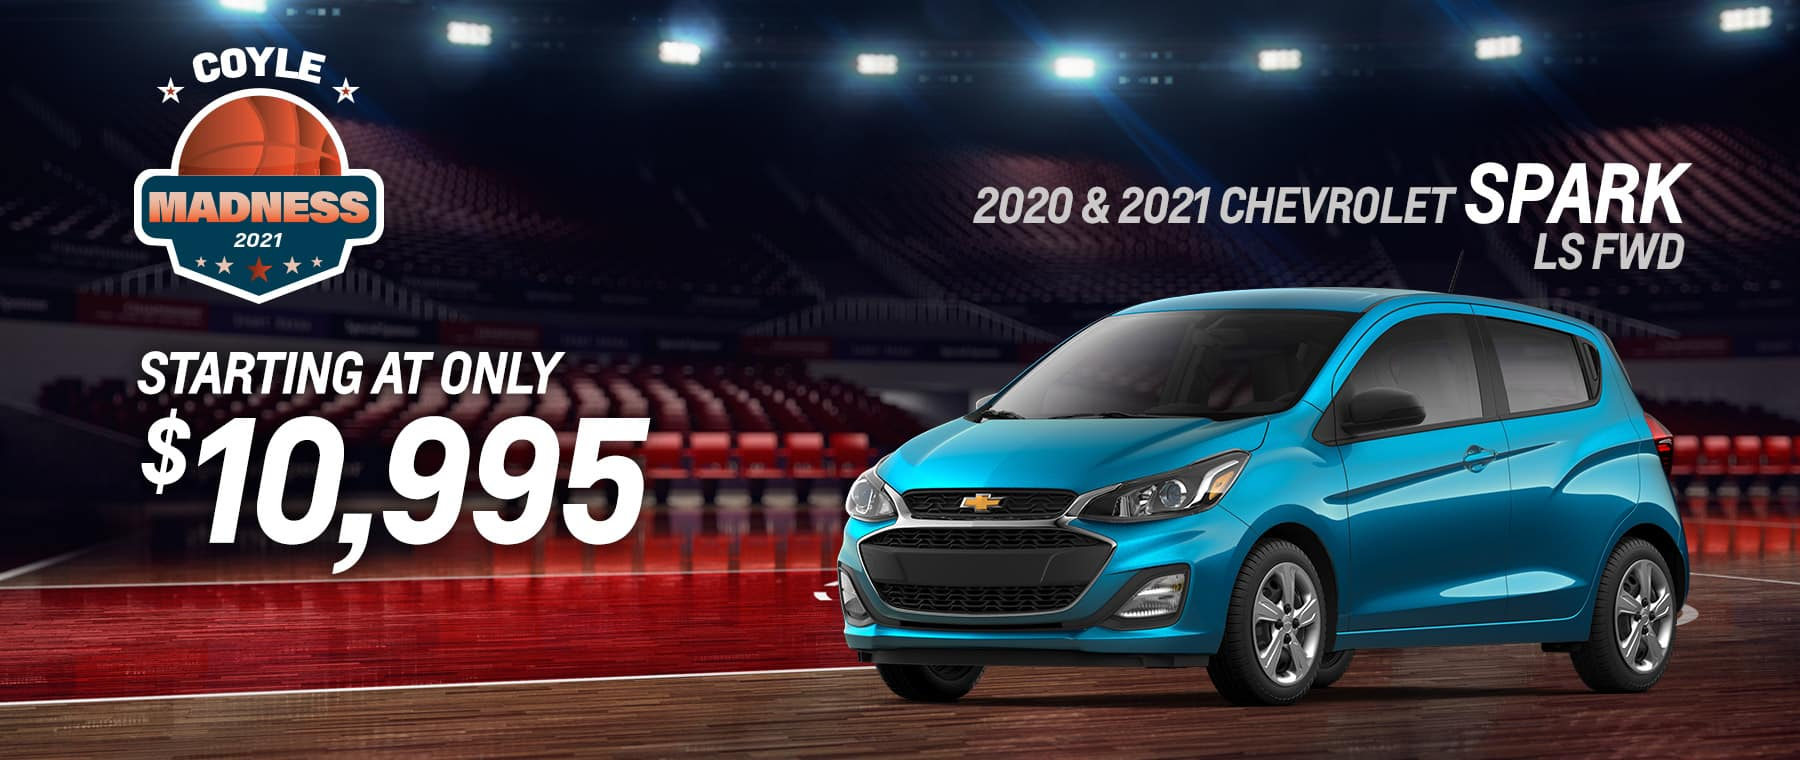 Special price on a new 2020 or 2021 Chevrolet Spark